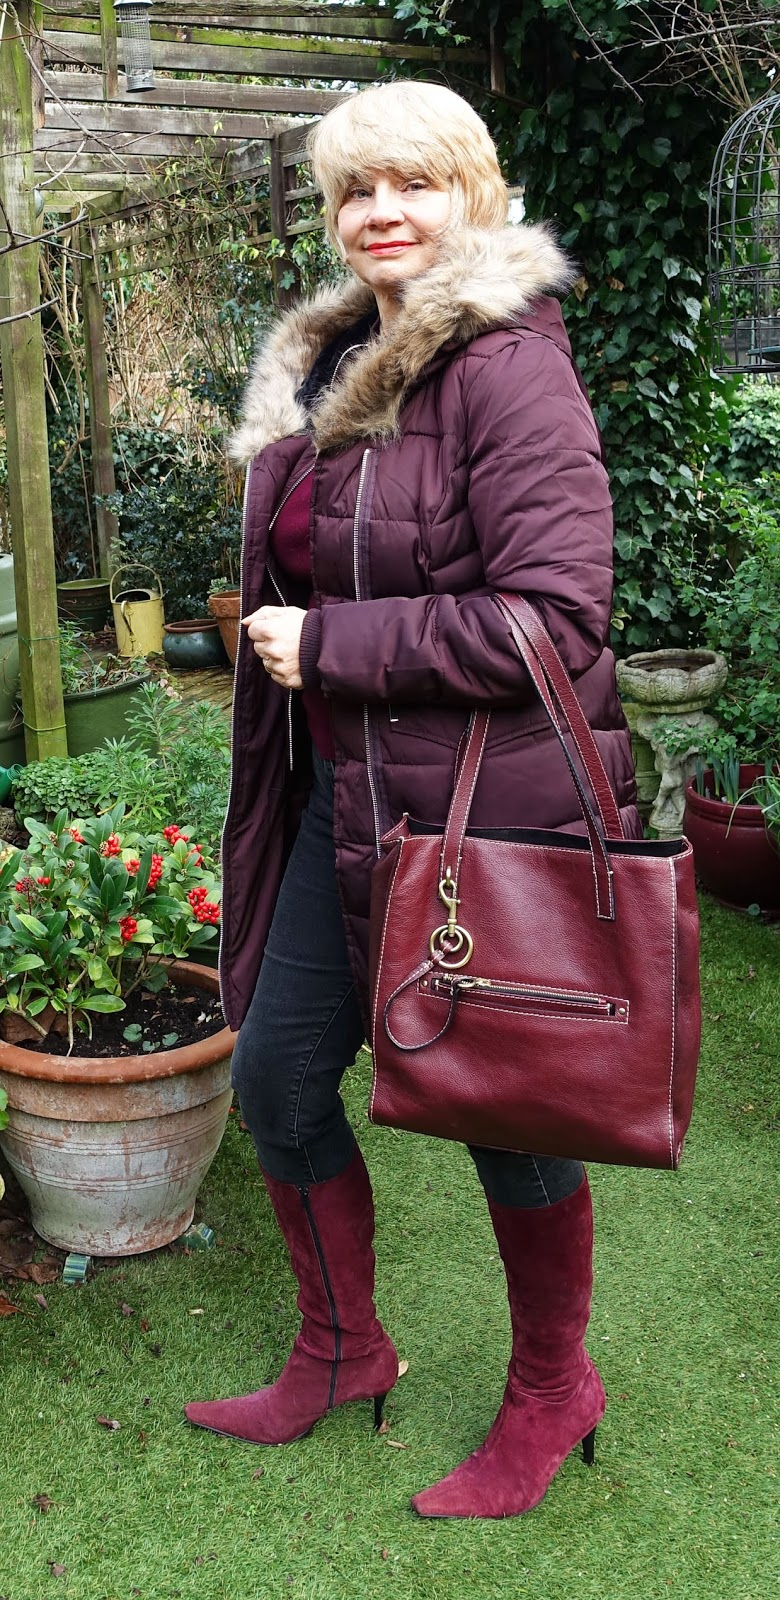 Fur trimmed burgundy insulated parka coat from Oasis, ideal for the wet and windy UK winter weather